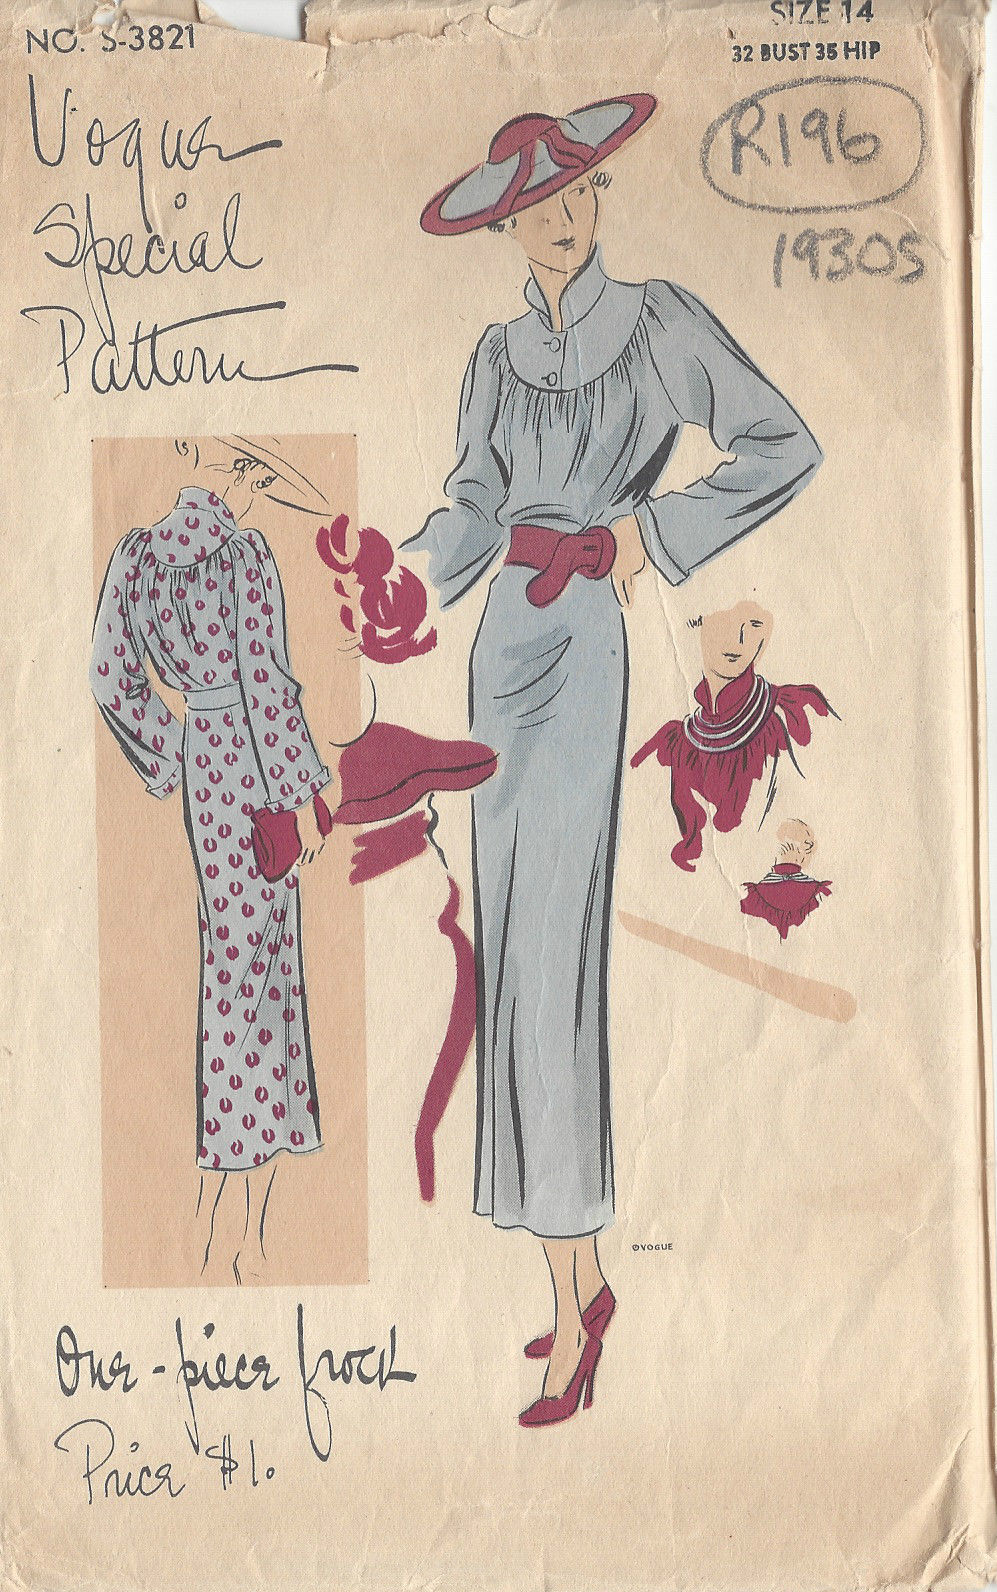 1930s vintage vogue sewing pattern one piece dress b32 r196 1930s vintage vogue sewing pattern one piece dress b32 r196 the vintage pattern shop jeuxipadfo Choice Image